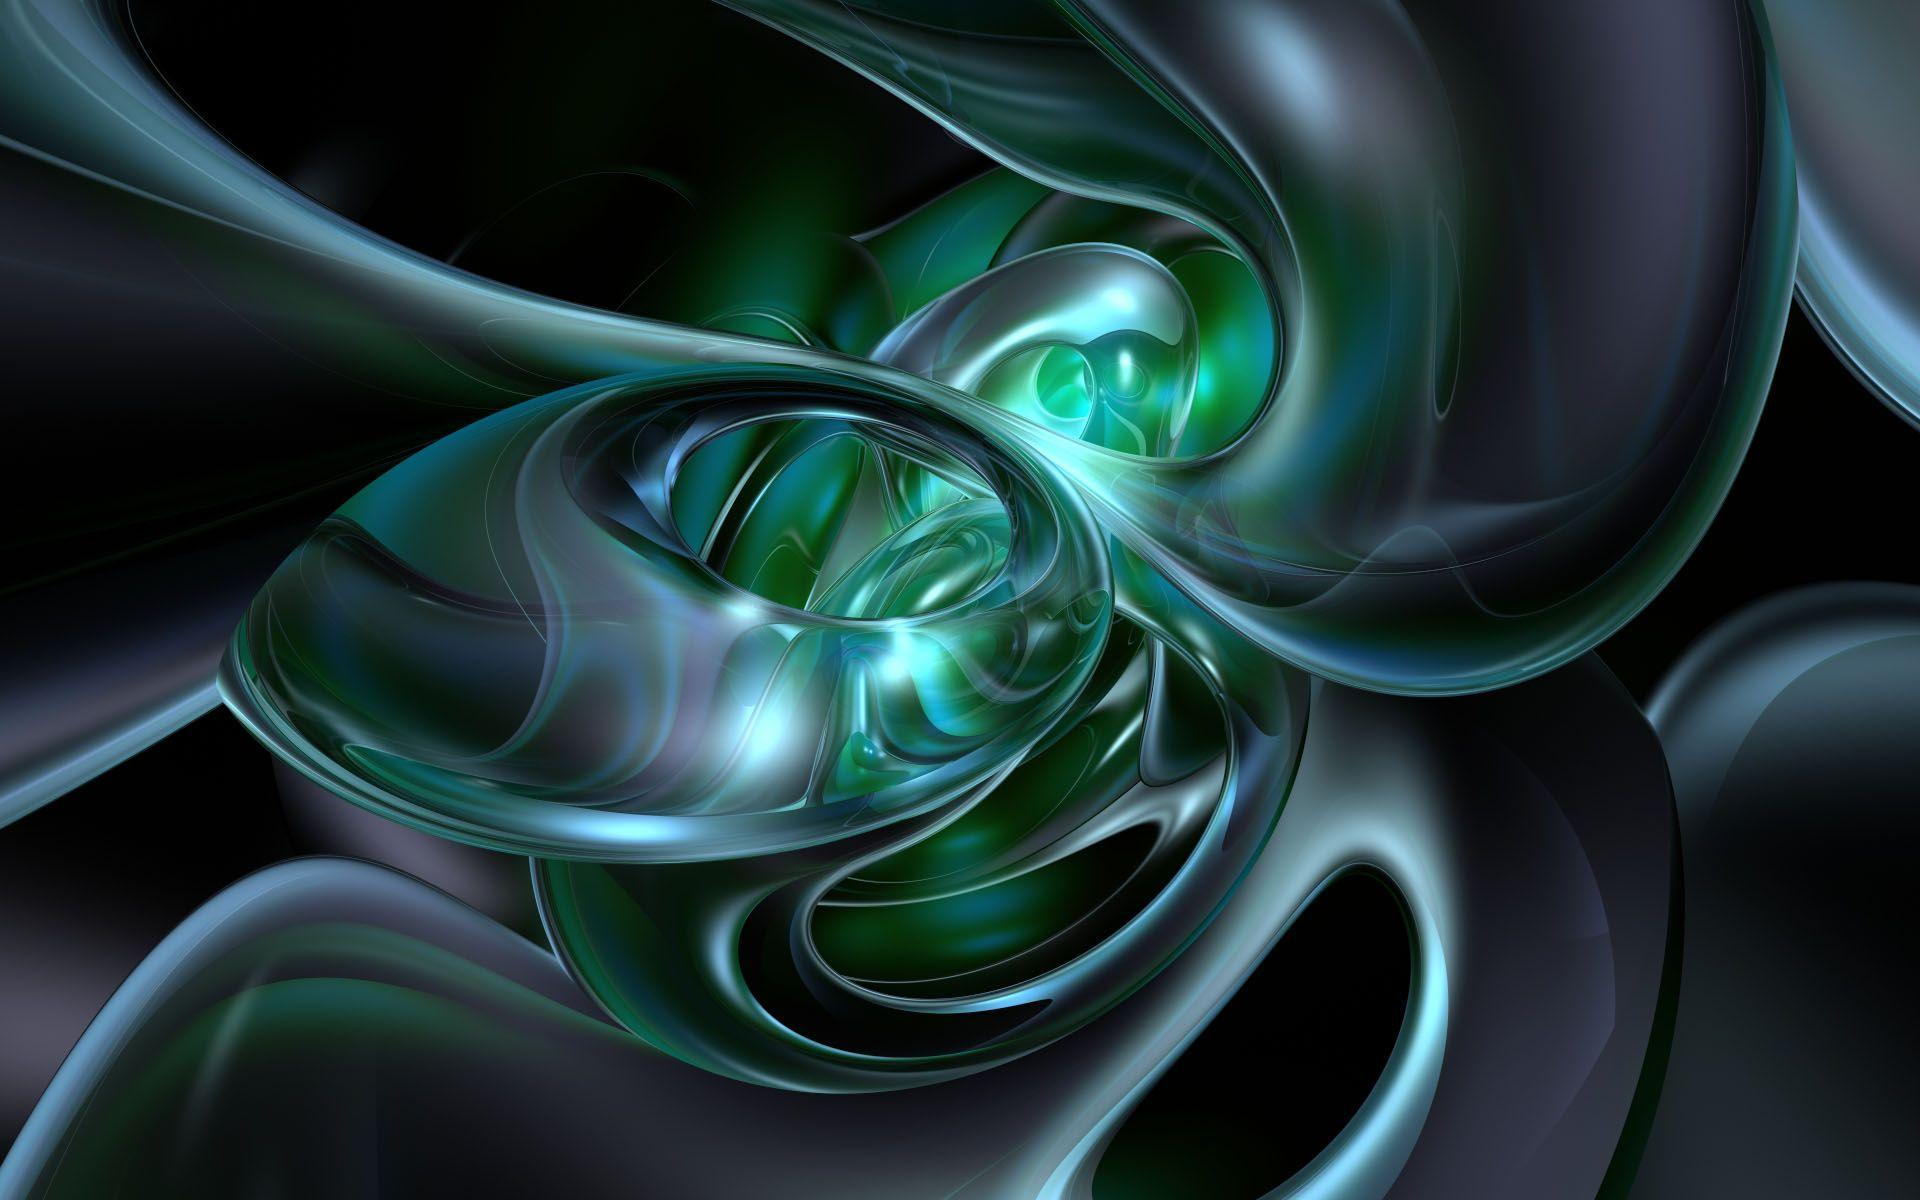 30 High Definition 3d Ipad Wallpapers: High Definition 3D Wallpapers